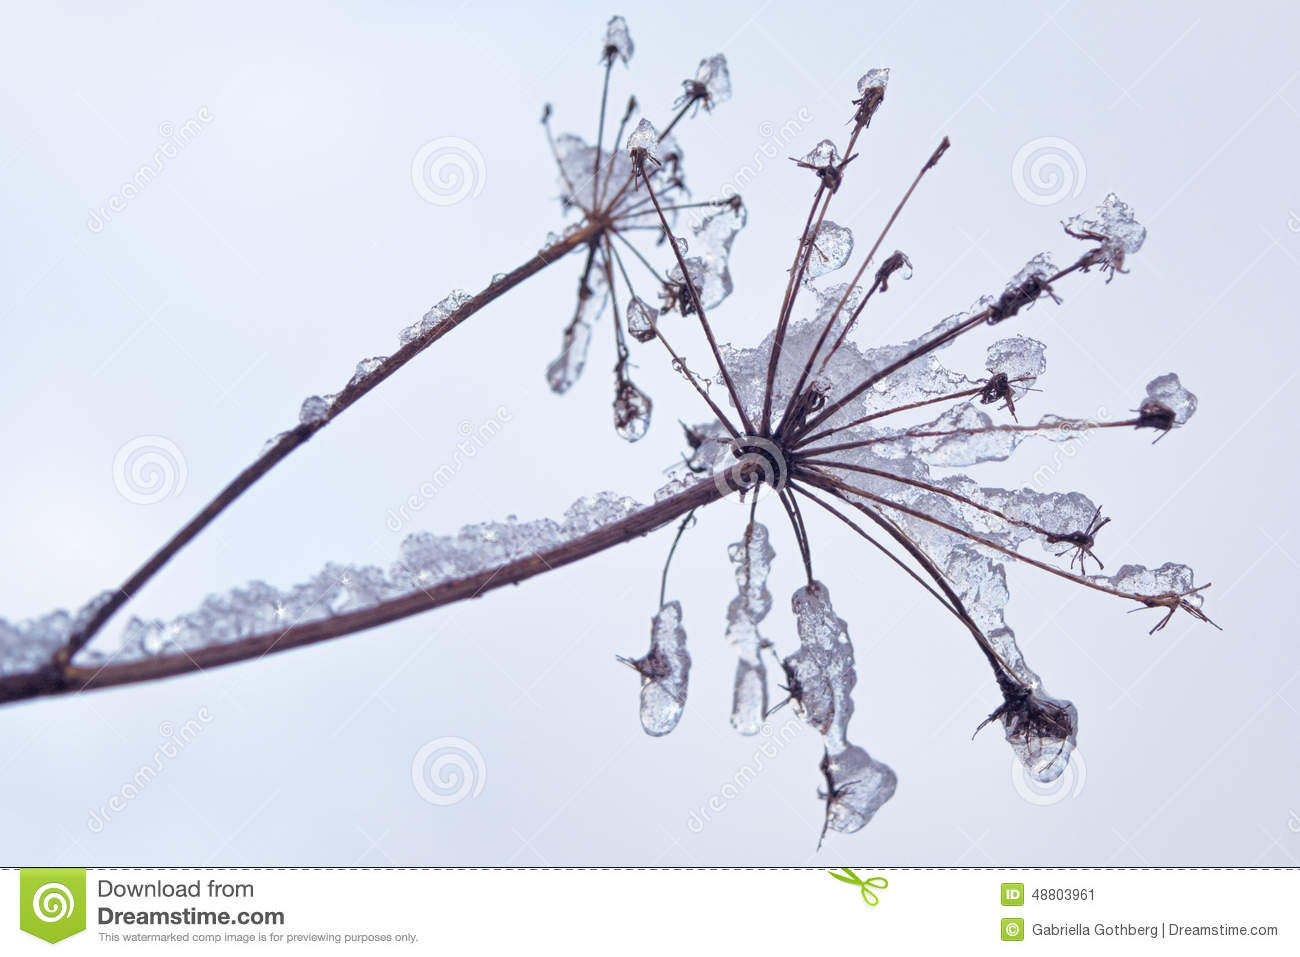 Fragile plant covered with ice and snow crystals